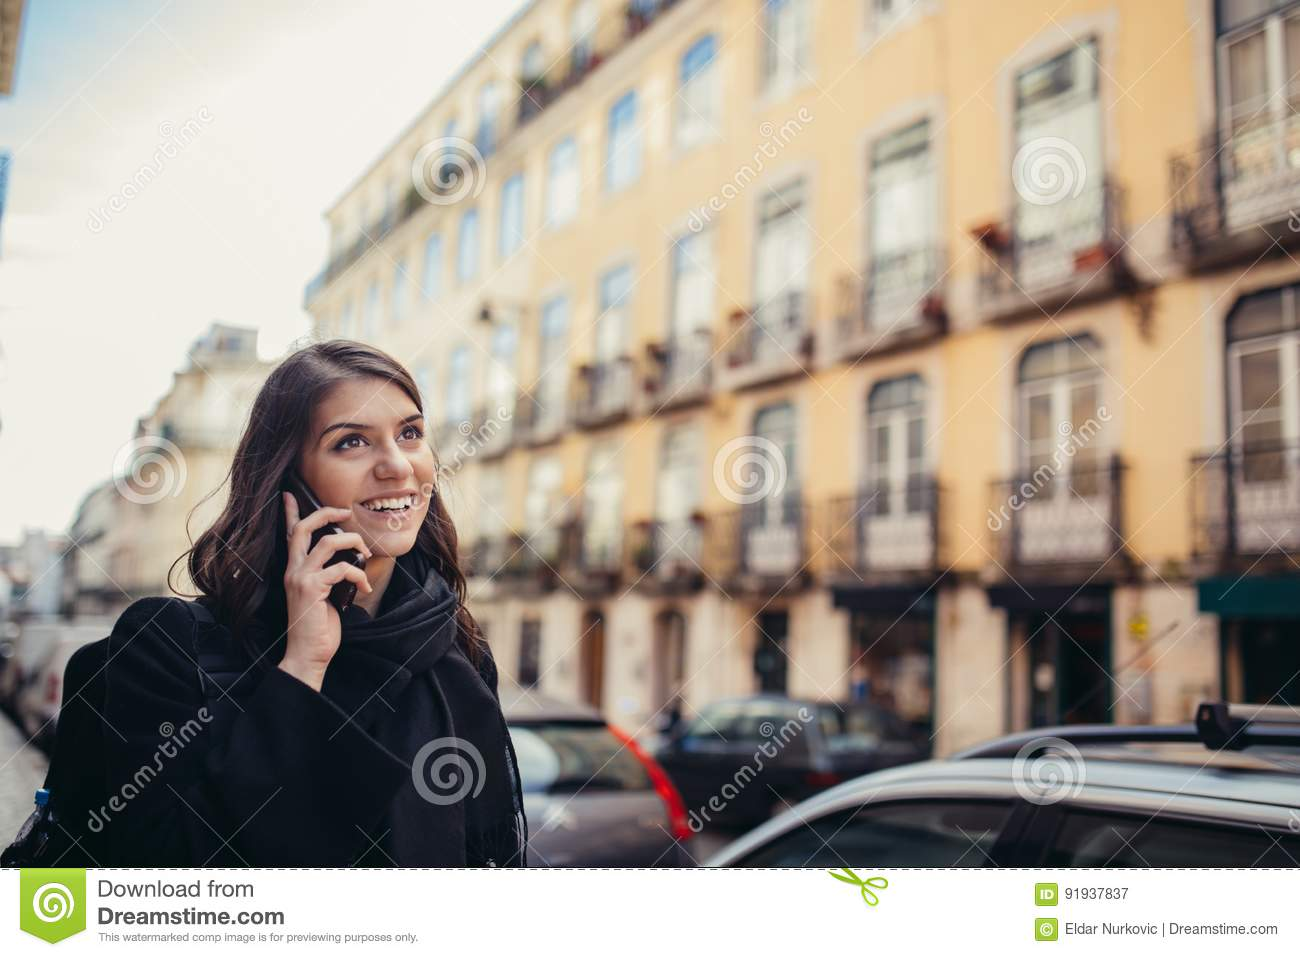 Smiling young woman talking on her smartphone on the street.Communicating with friends,free calls and messages for young people.